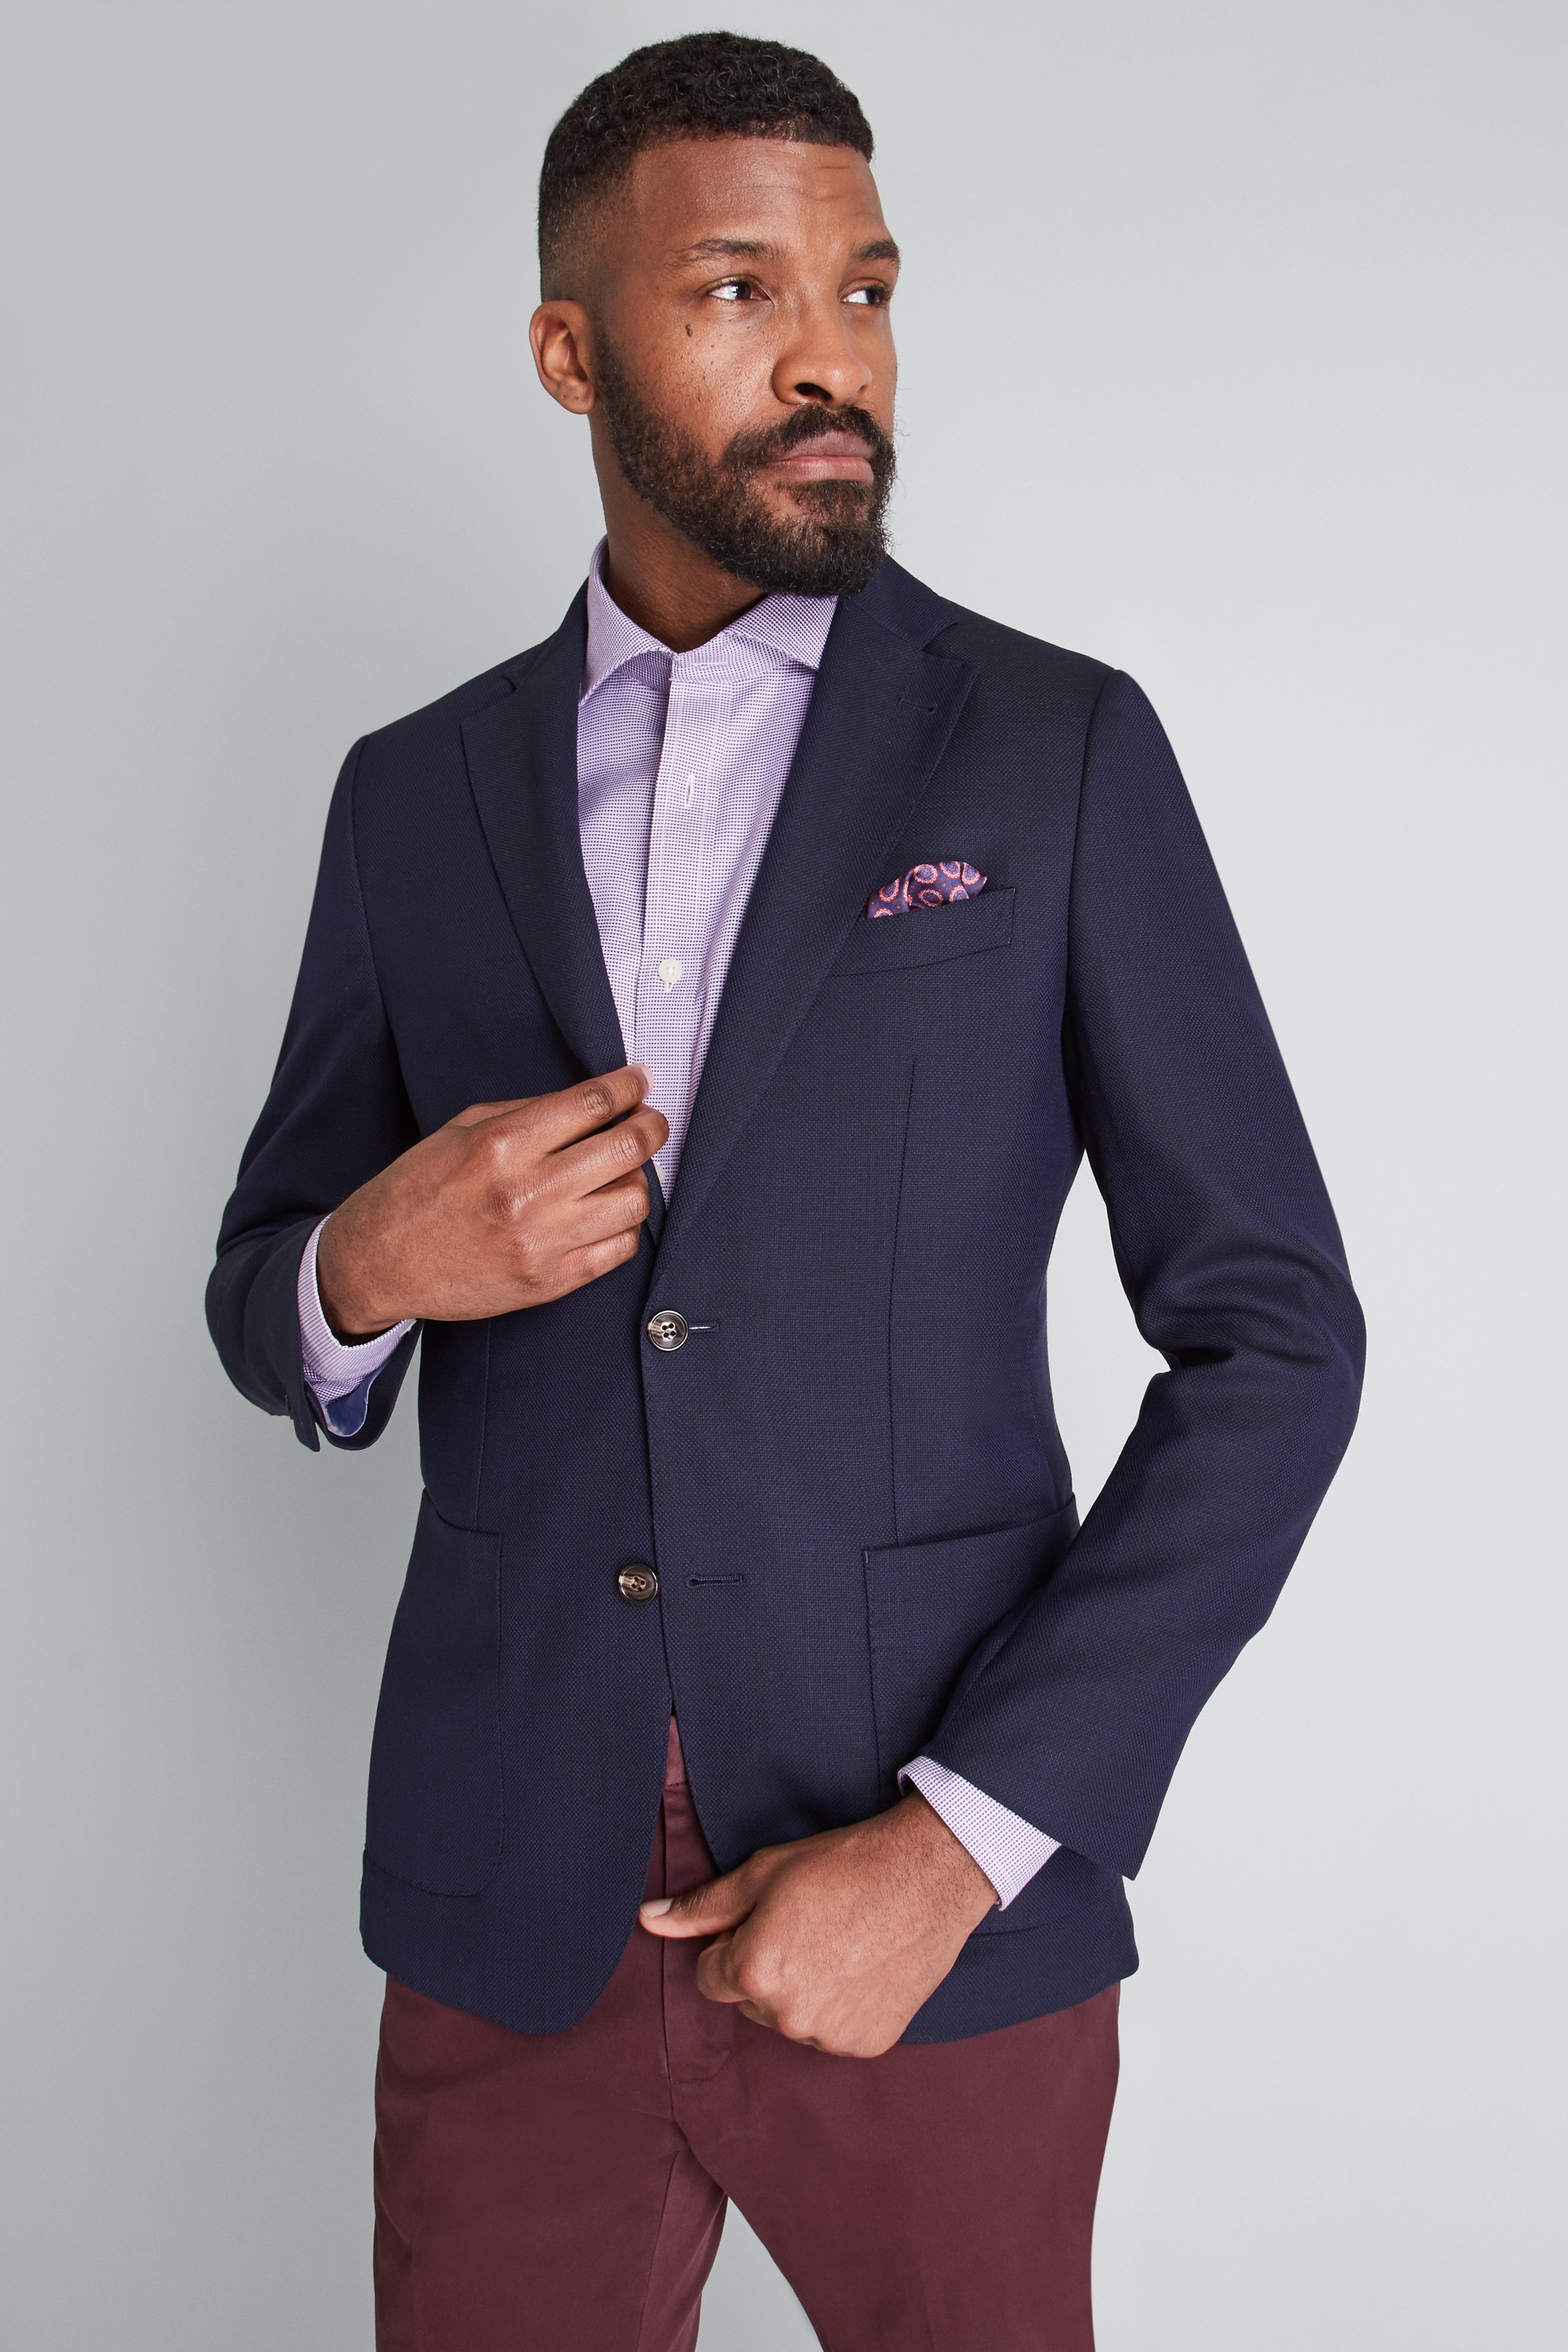 a0ca3aa3 Details about Moss 1851 Mens Jacket Tailored Fit Navy Blue Travel Blazer  Smart Casual 2 Button